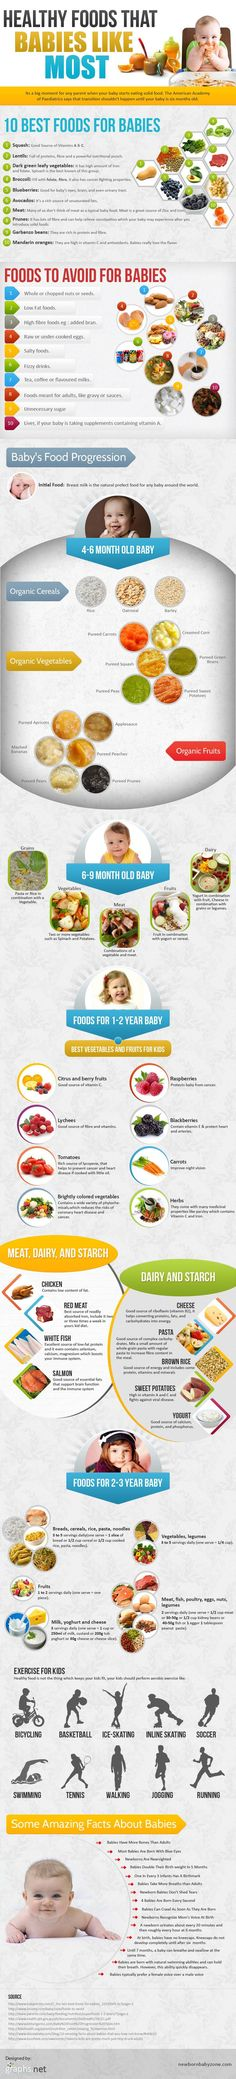 What Babies Can Eat Ages Newborn to 3 Years #baby #weaning #babyfood #healthybabyfood